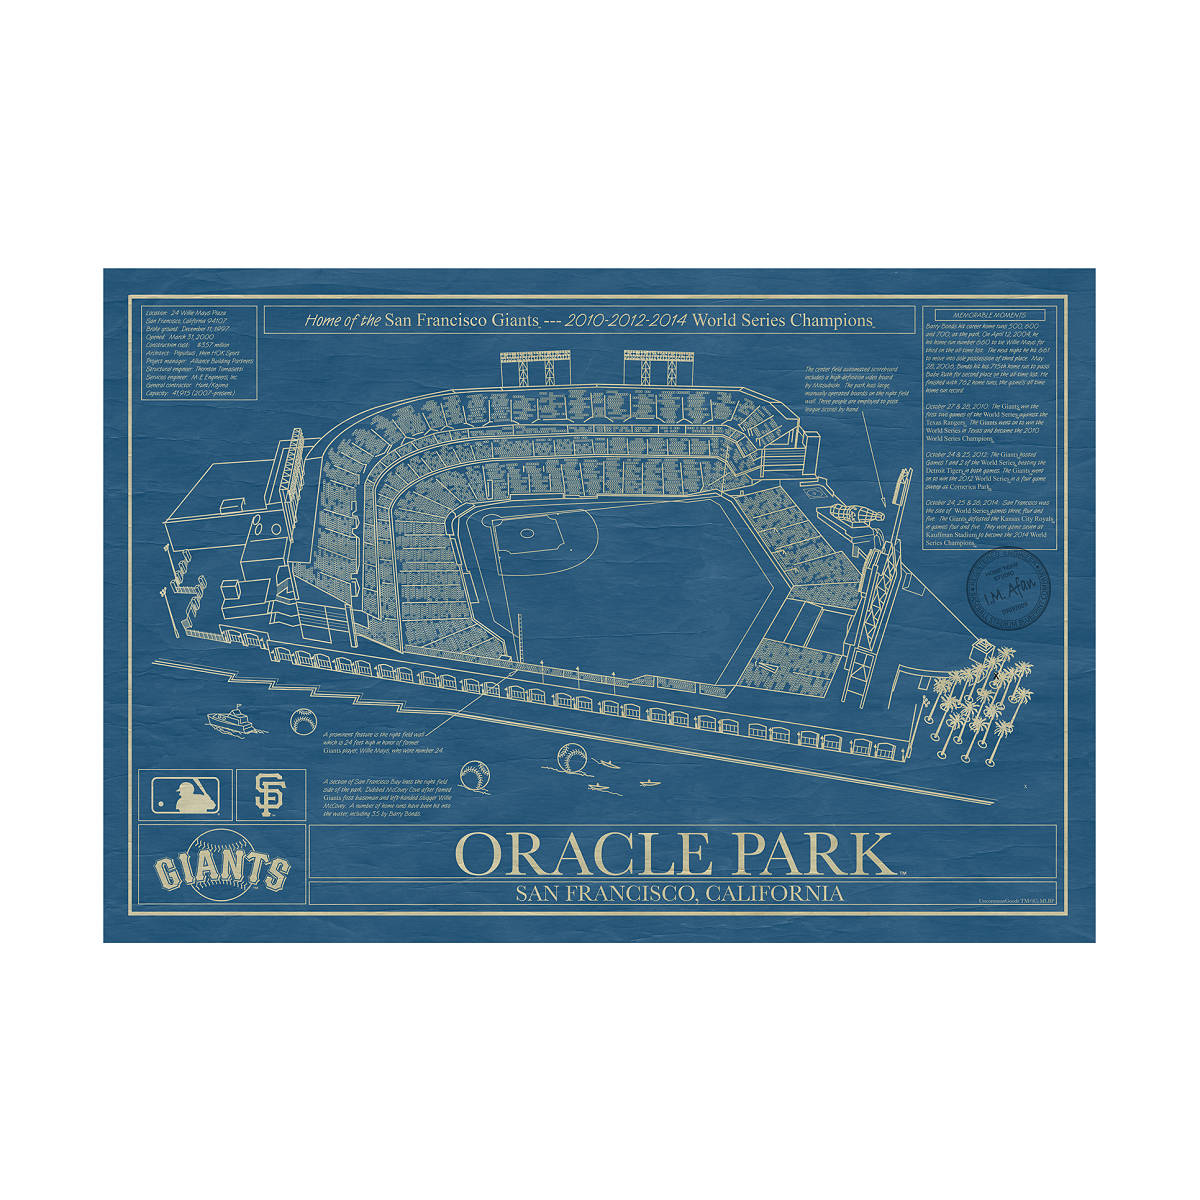 Baseball stadium blueprints baseball stadium art fenway park baseball stadium blueprints 3 thumbnail malvernweather Gallery